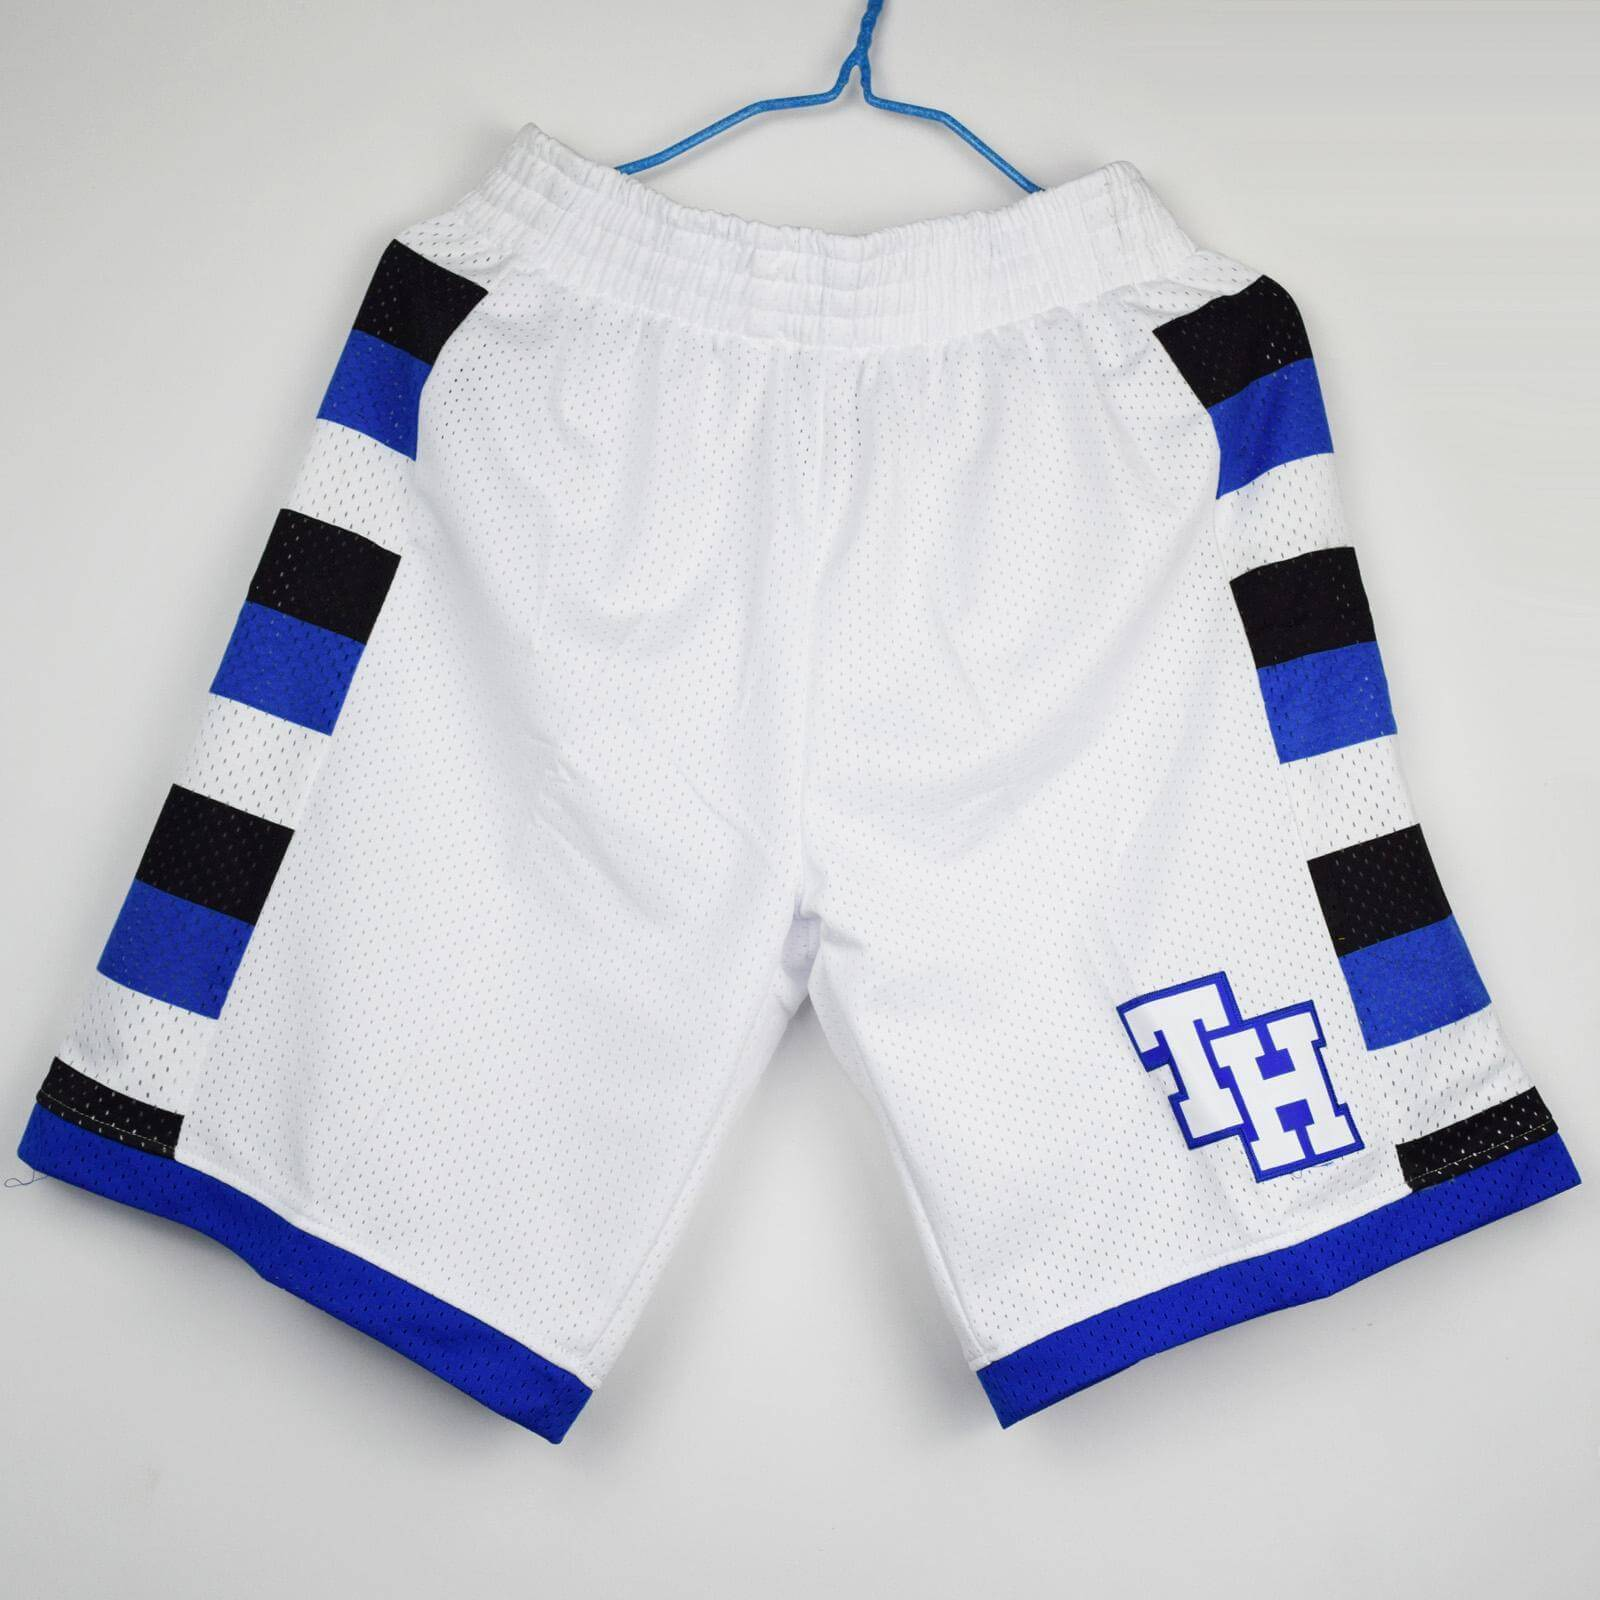 Nathan Scott One Tree Hill Basketball Shorts - Jersey Champs - Custom Basketball, Baseball, Football & Hockey Jerseys